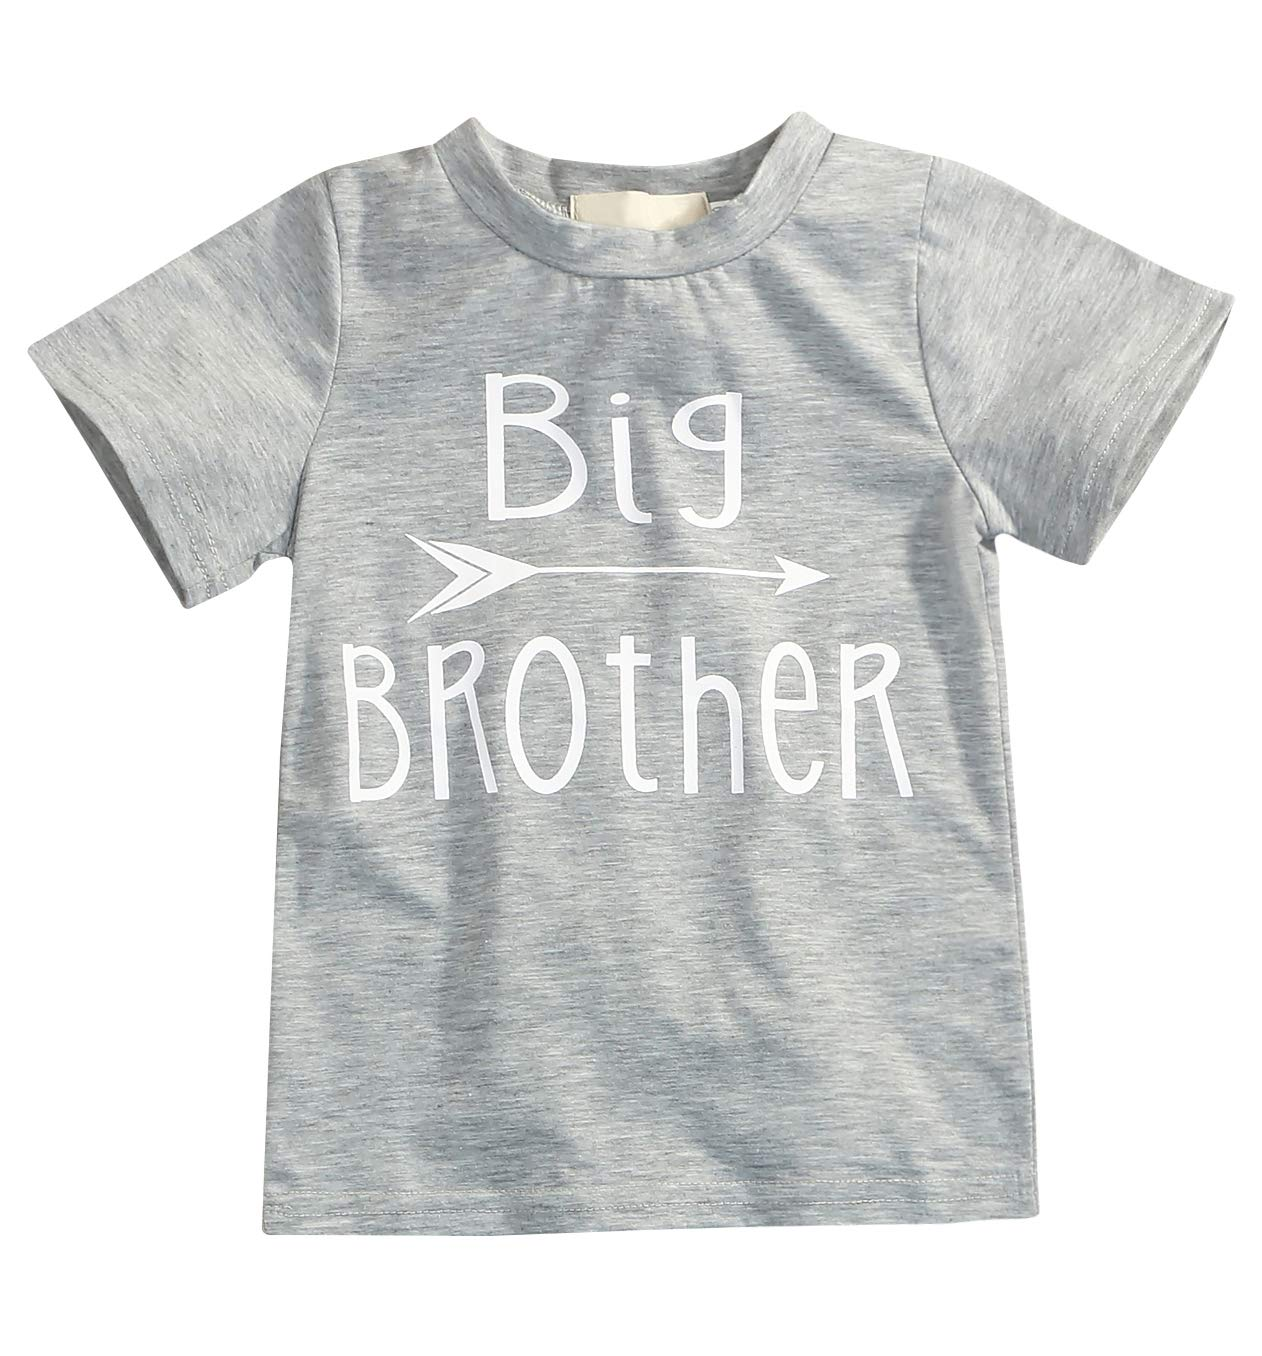 Younger star 1PC Children Baby Boy Gray Letter Print Short Sleeve T-Shirt Clothes Outfit (Gray-Brother, 3 T)